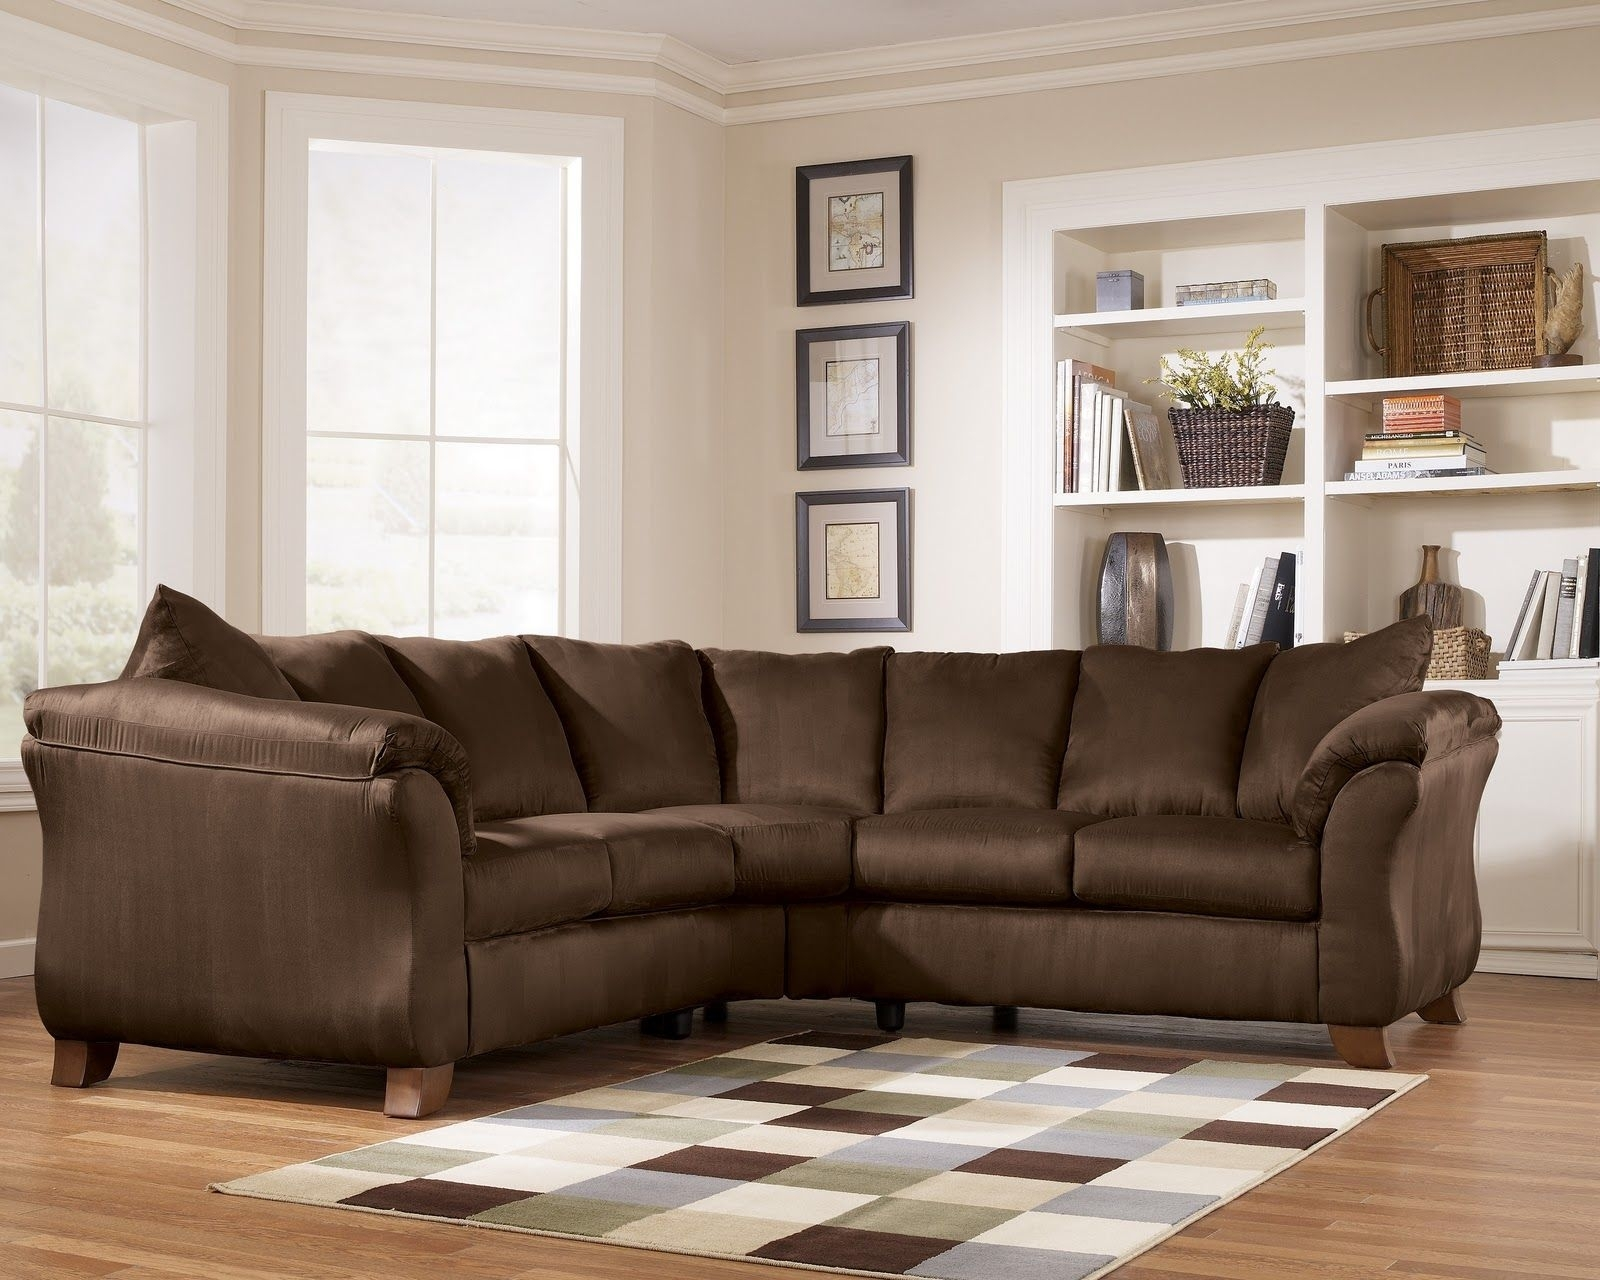 Ashley Furniture – Durapella 36104 Cafe Sectional – Royal Furniture Regarding Royal Furniture Sectional Sofas (View 9 of 10)